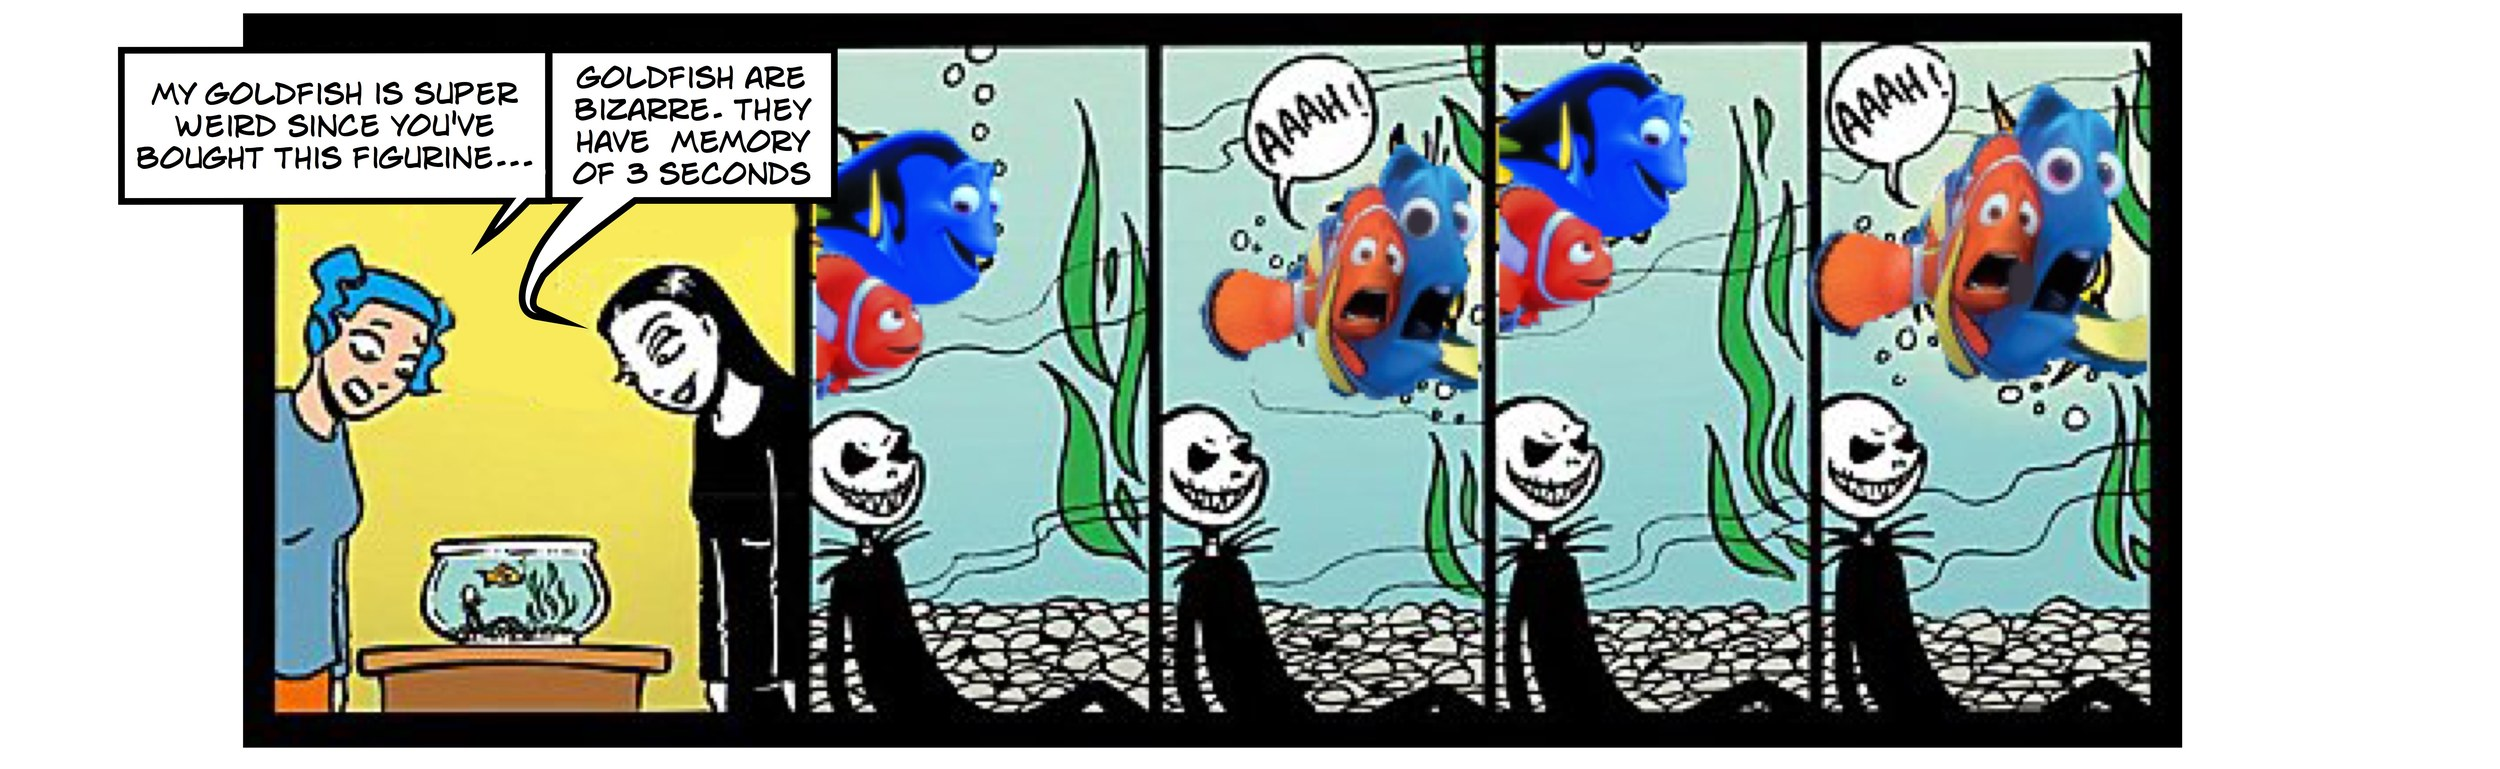 NEMI vs. FINDING NEMO